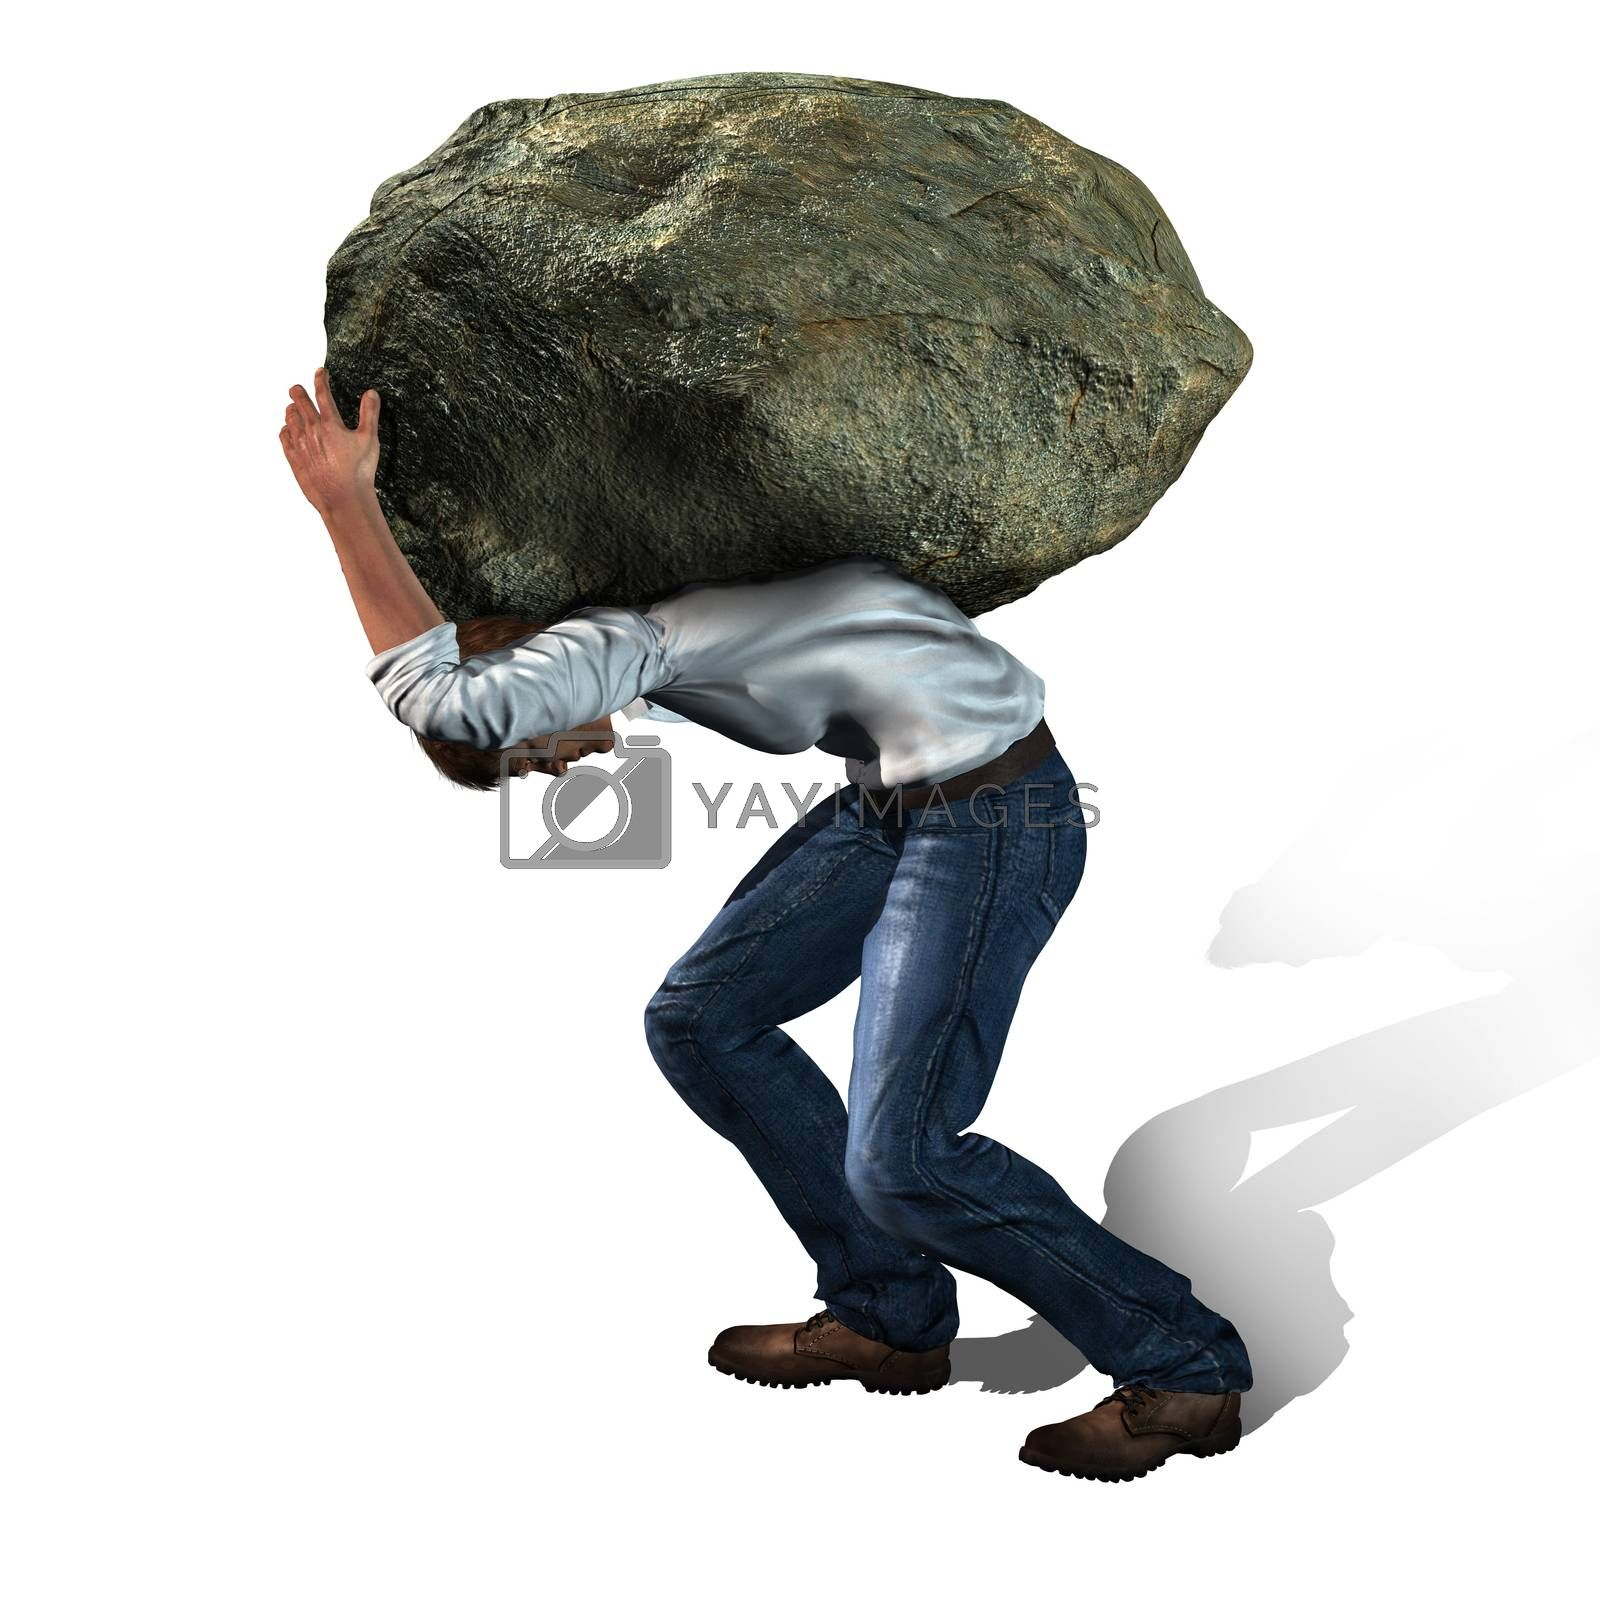 Concept of stress -  man with a big rock made in 3d software